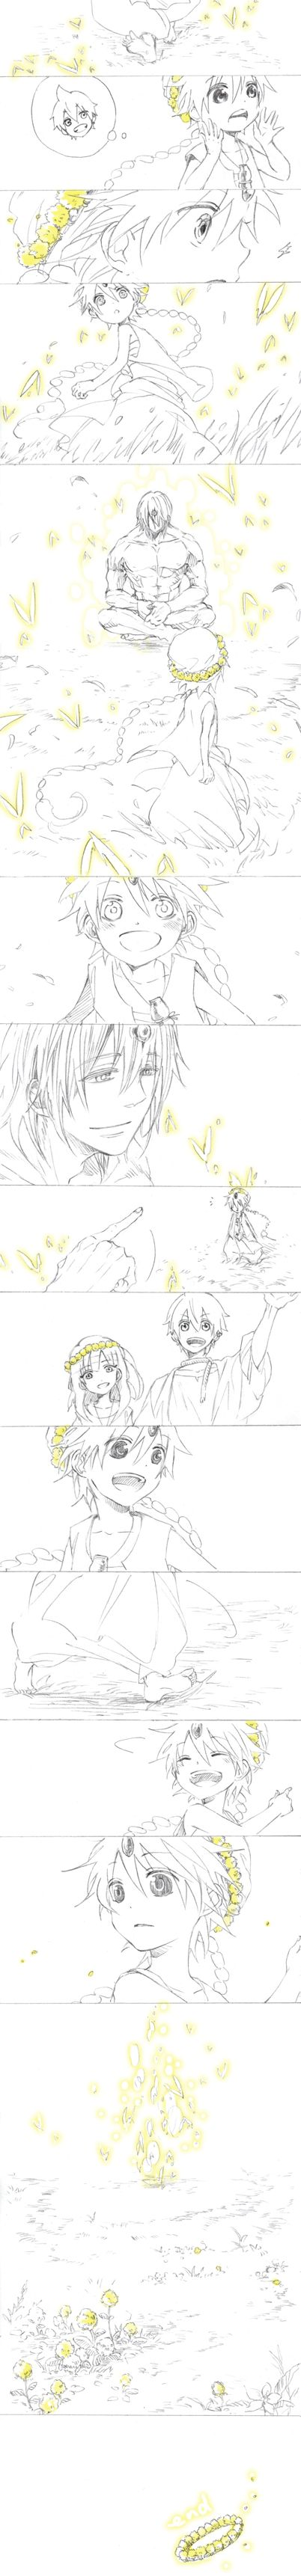 Magi - Aladdin, Morgiana, Alibaba and Ugo. RIGHT IN THE FEEEEEEELLLSSS TT.TT